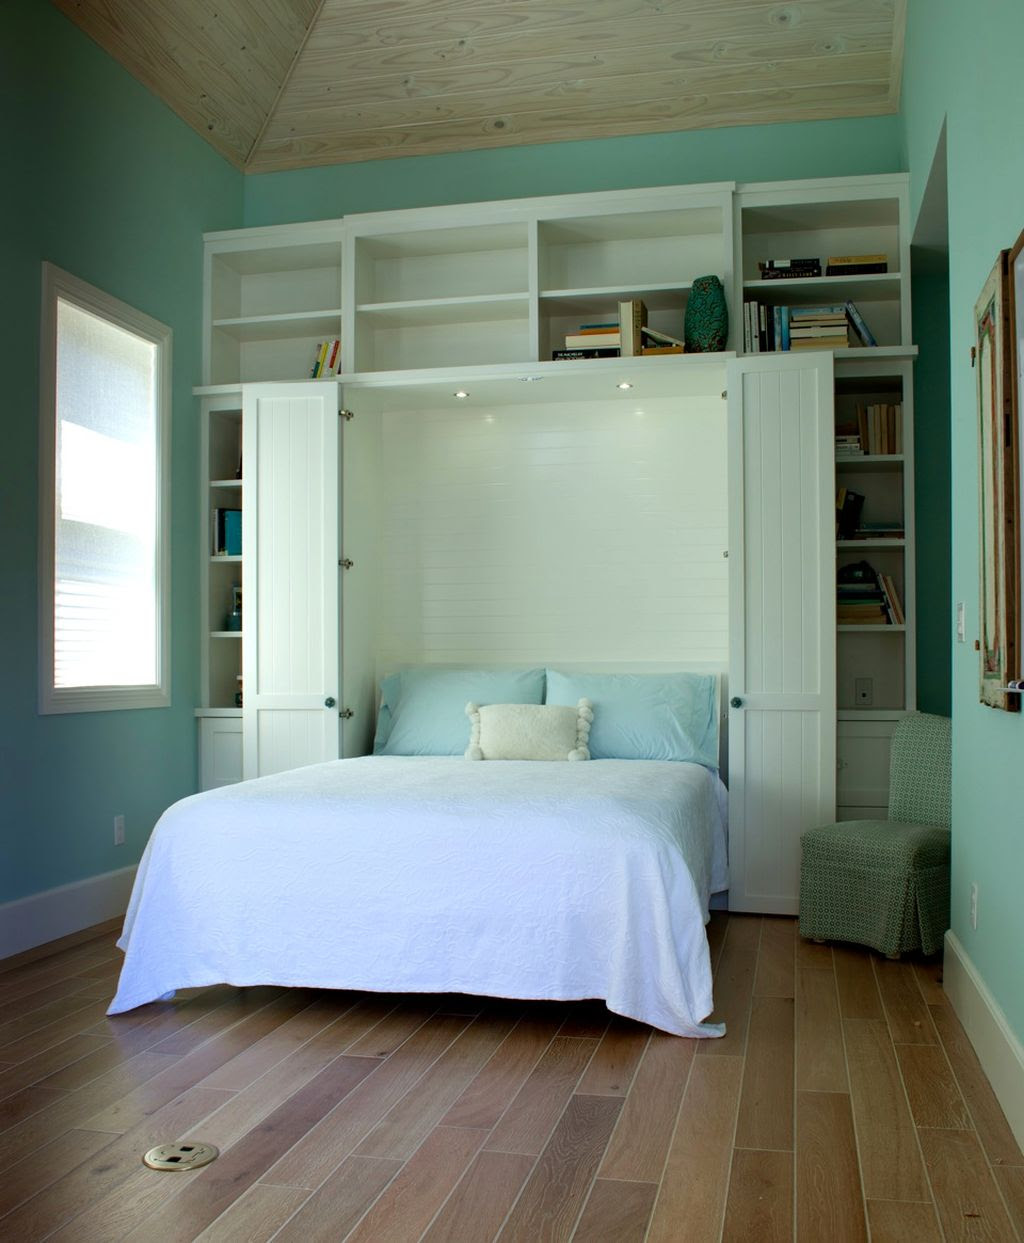 20 Unique Round Bed Design Ideas For Your Bedroom ...